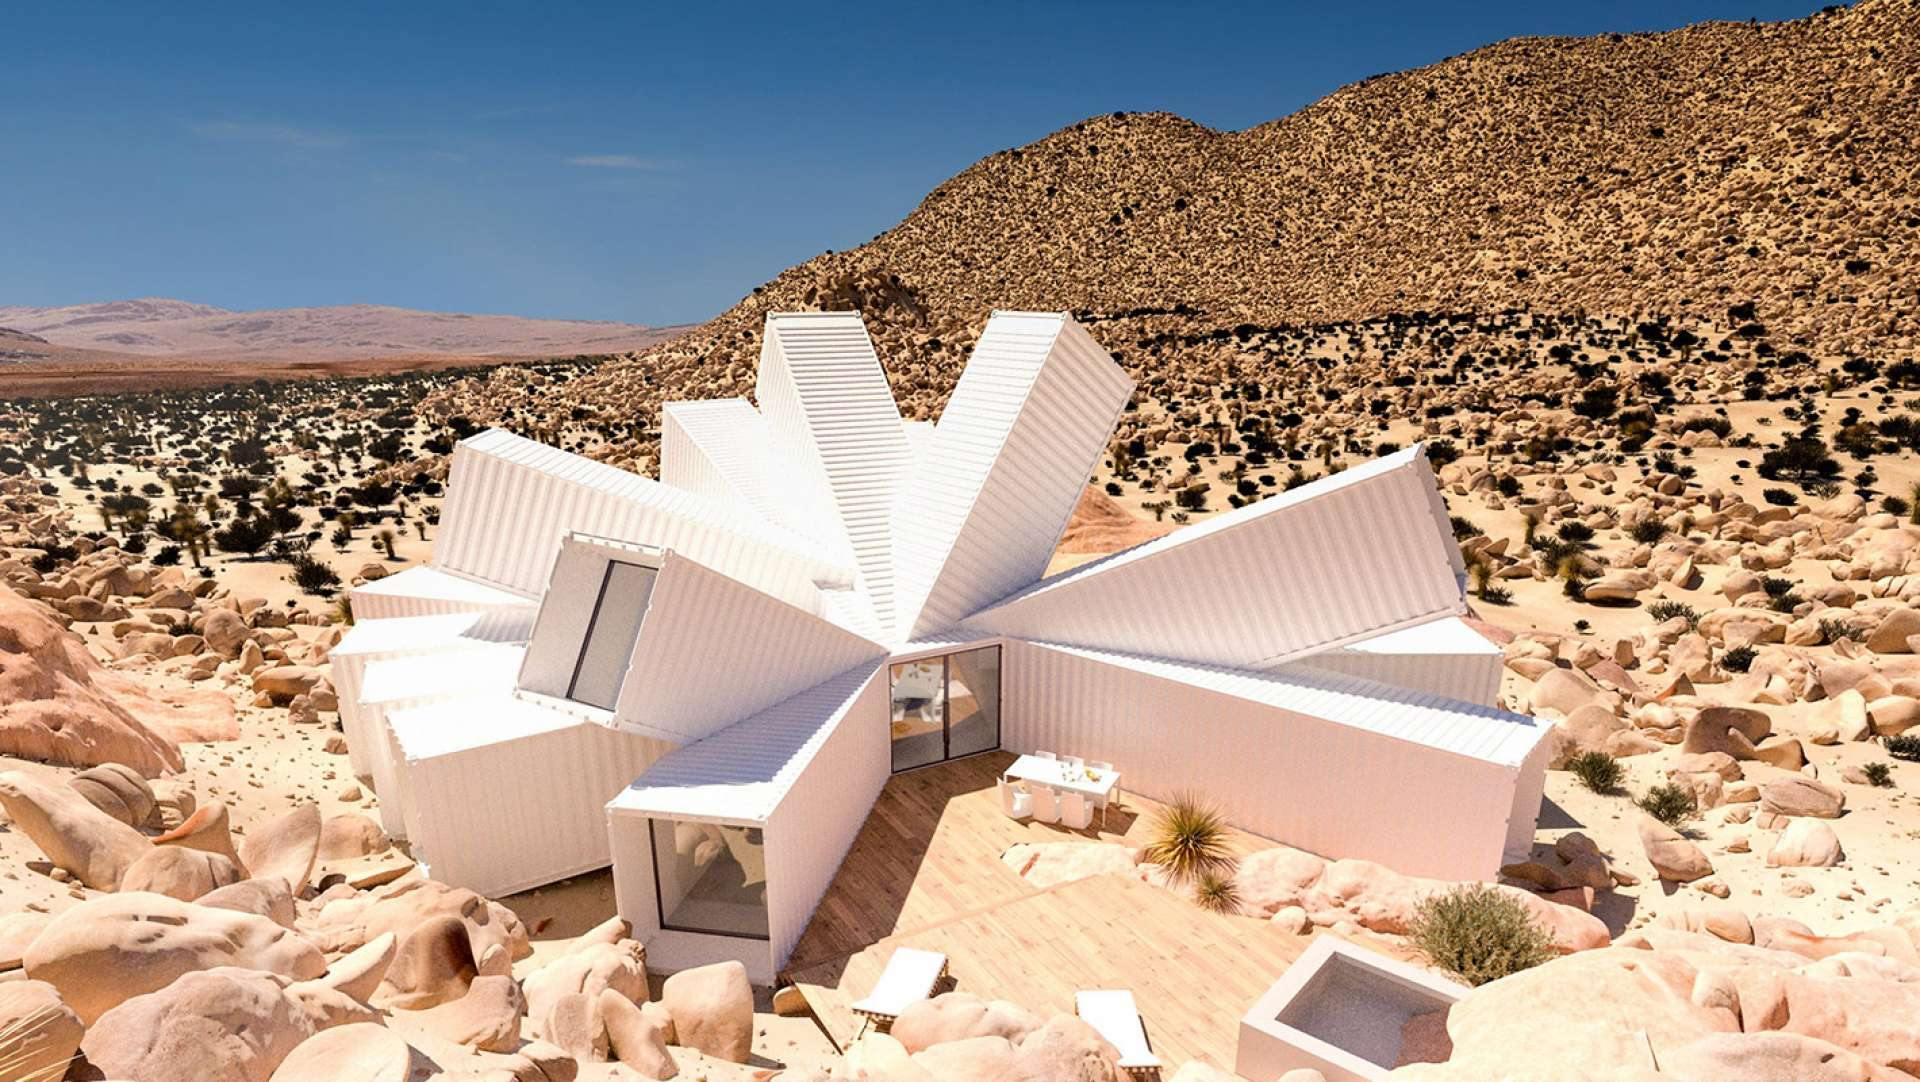 Splayed shipping containers form Joshua Tree Residence conceived by James Whitaker